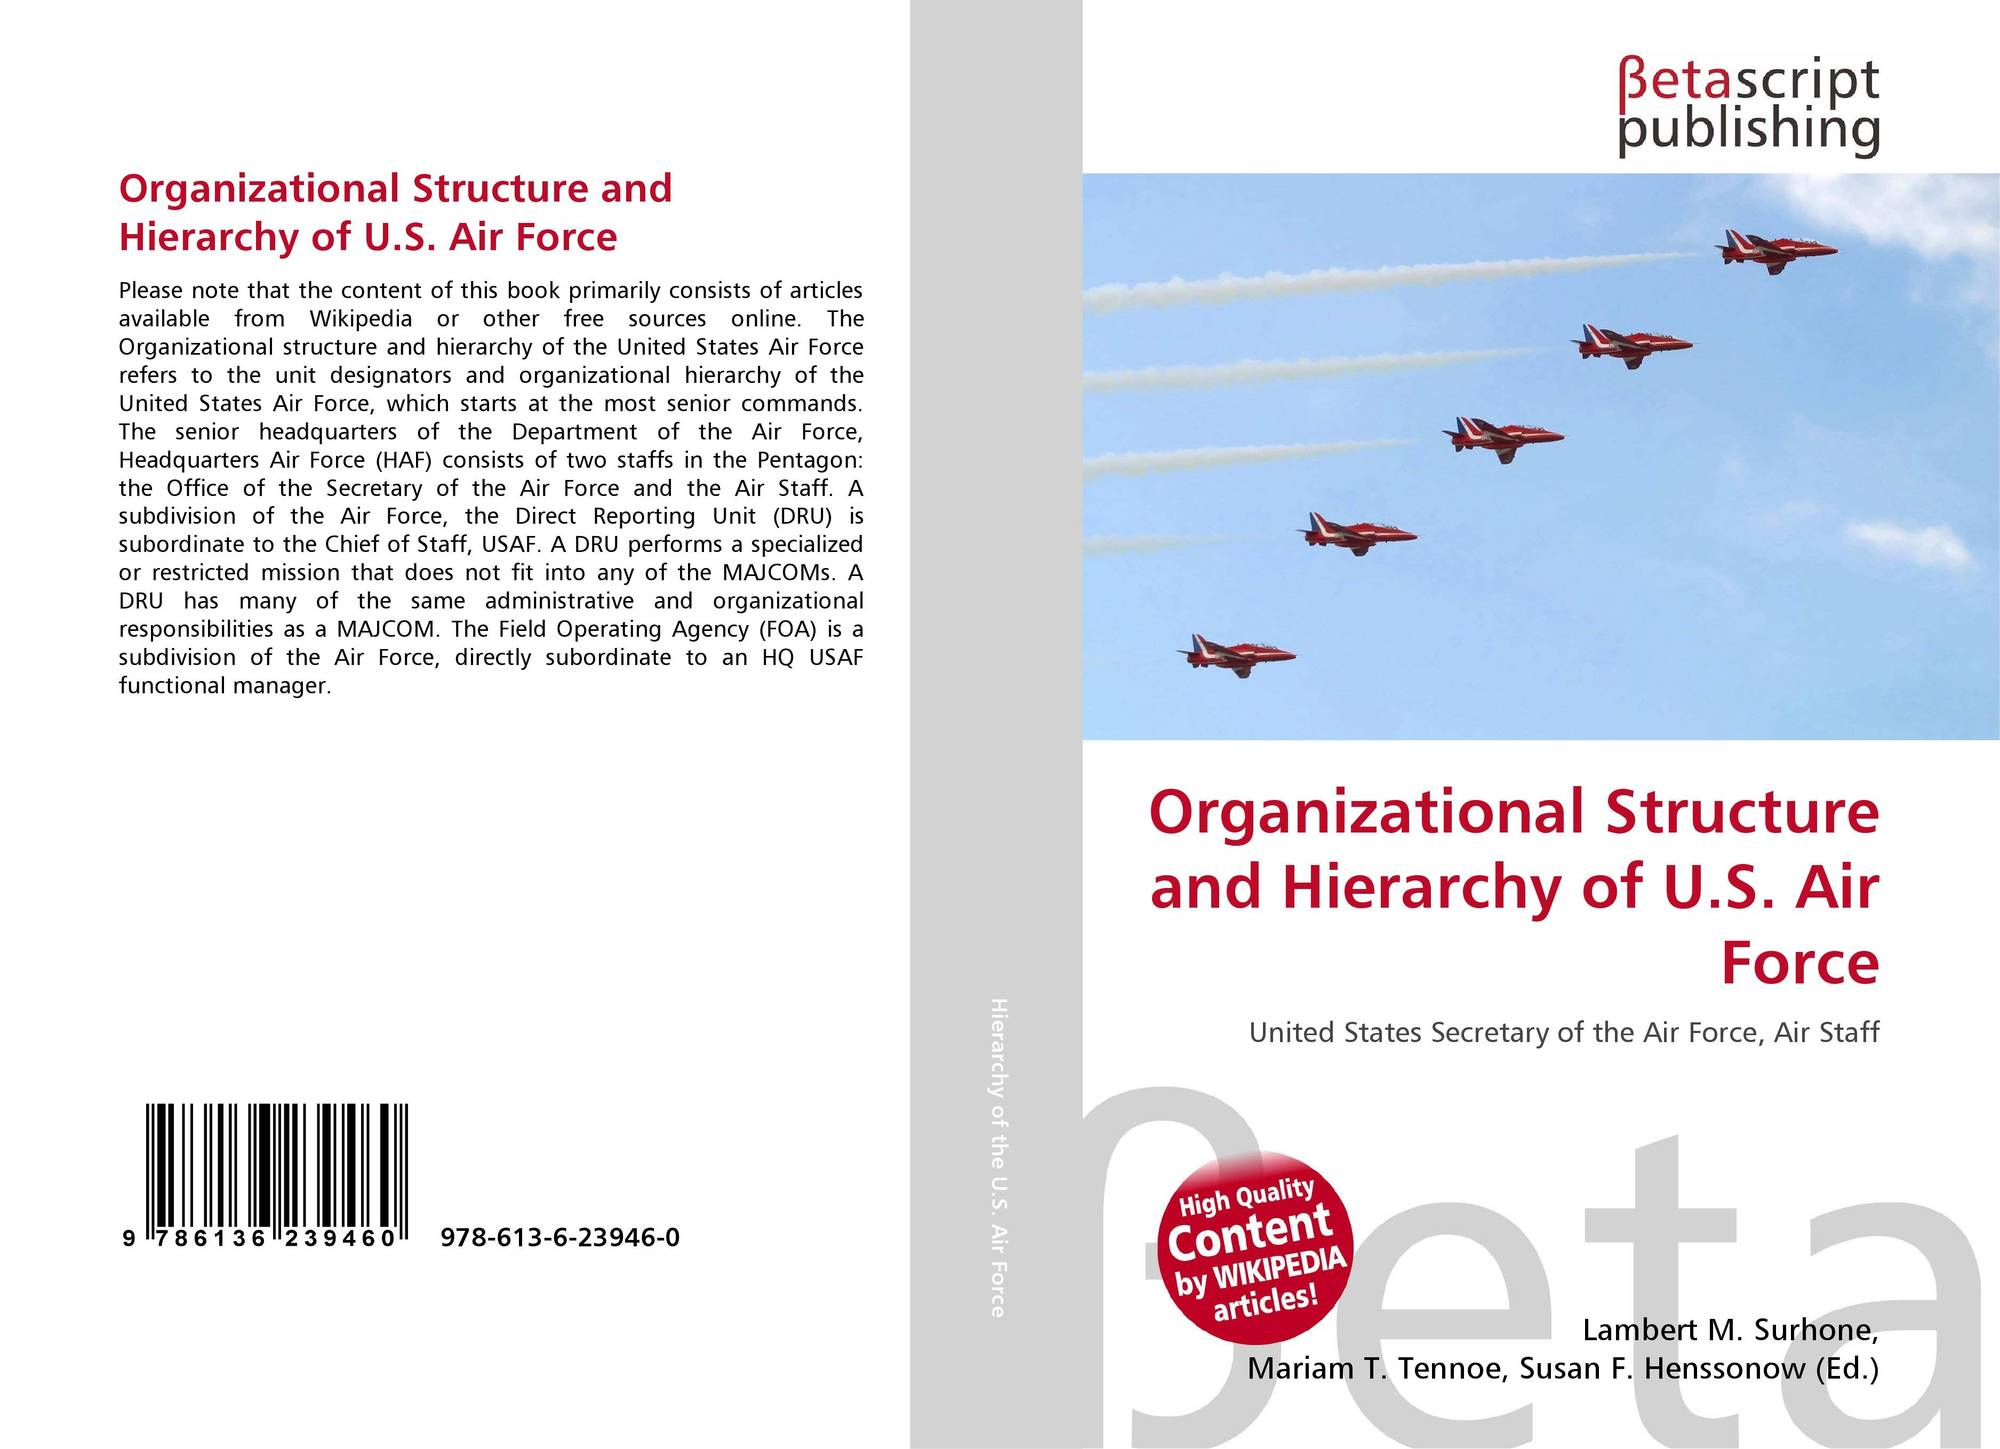 Organizational Structure and Hierarchy of U.S. Air Force